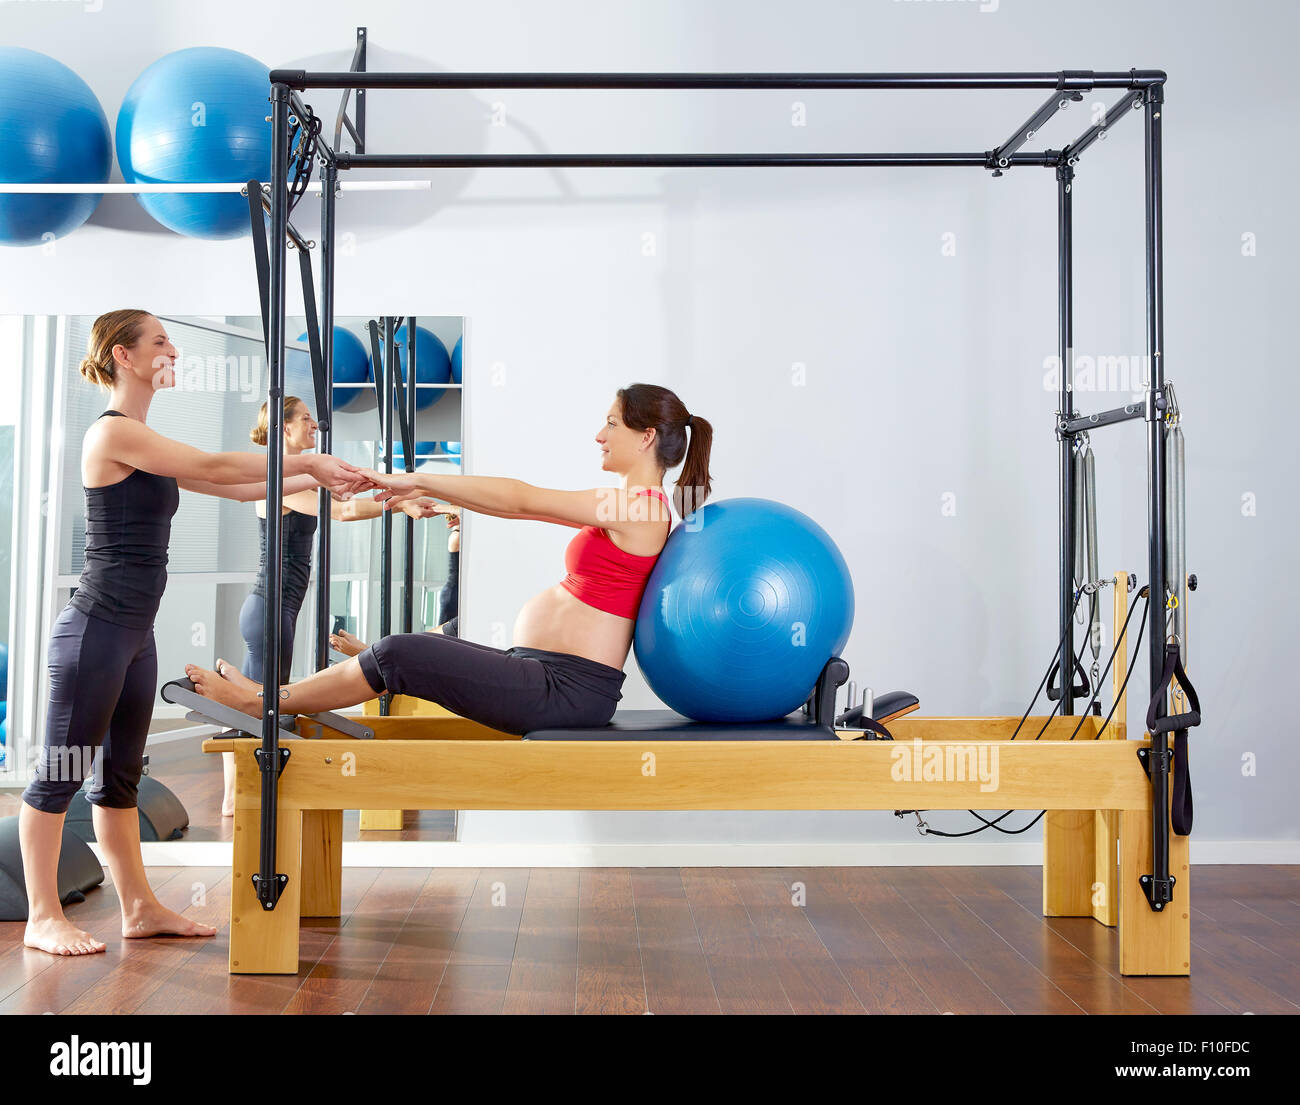 Woman Pilates Chair Exercises Fitness Stock Photo: Pregnant Woman Pilates Reformer Cadillac Fitball Exercise